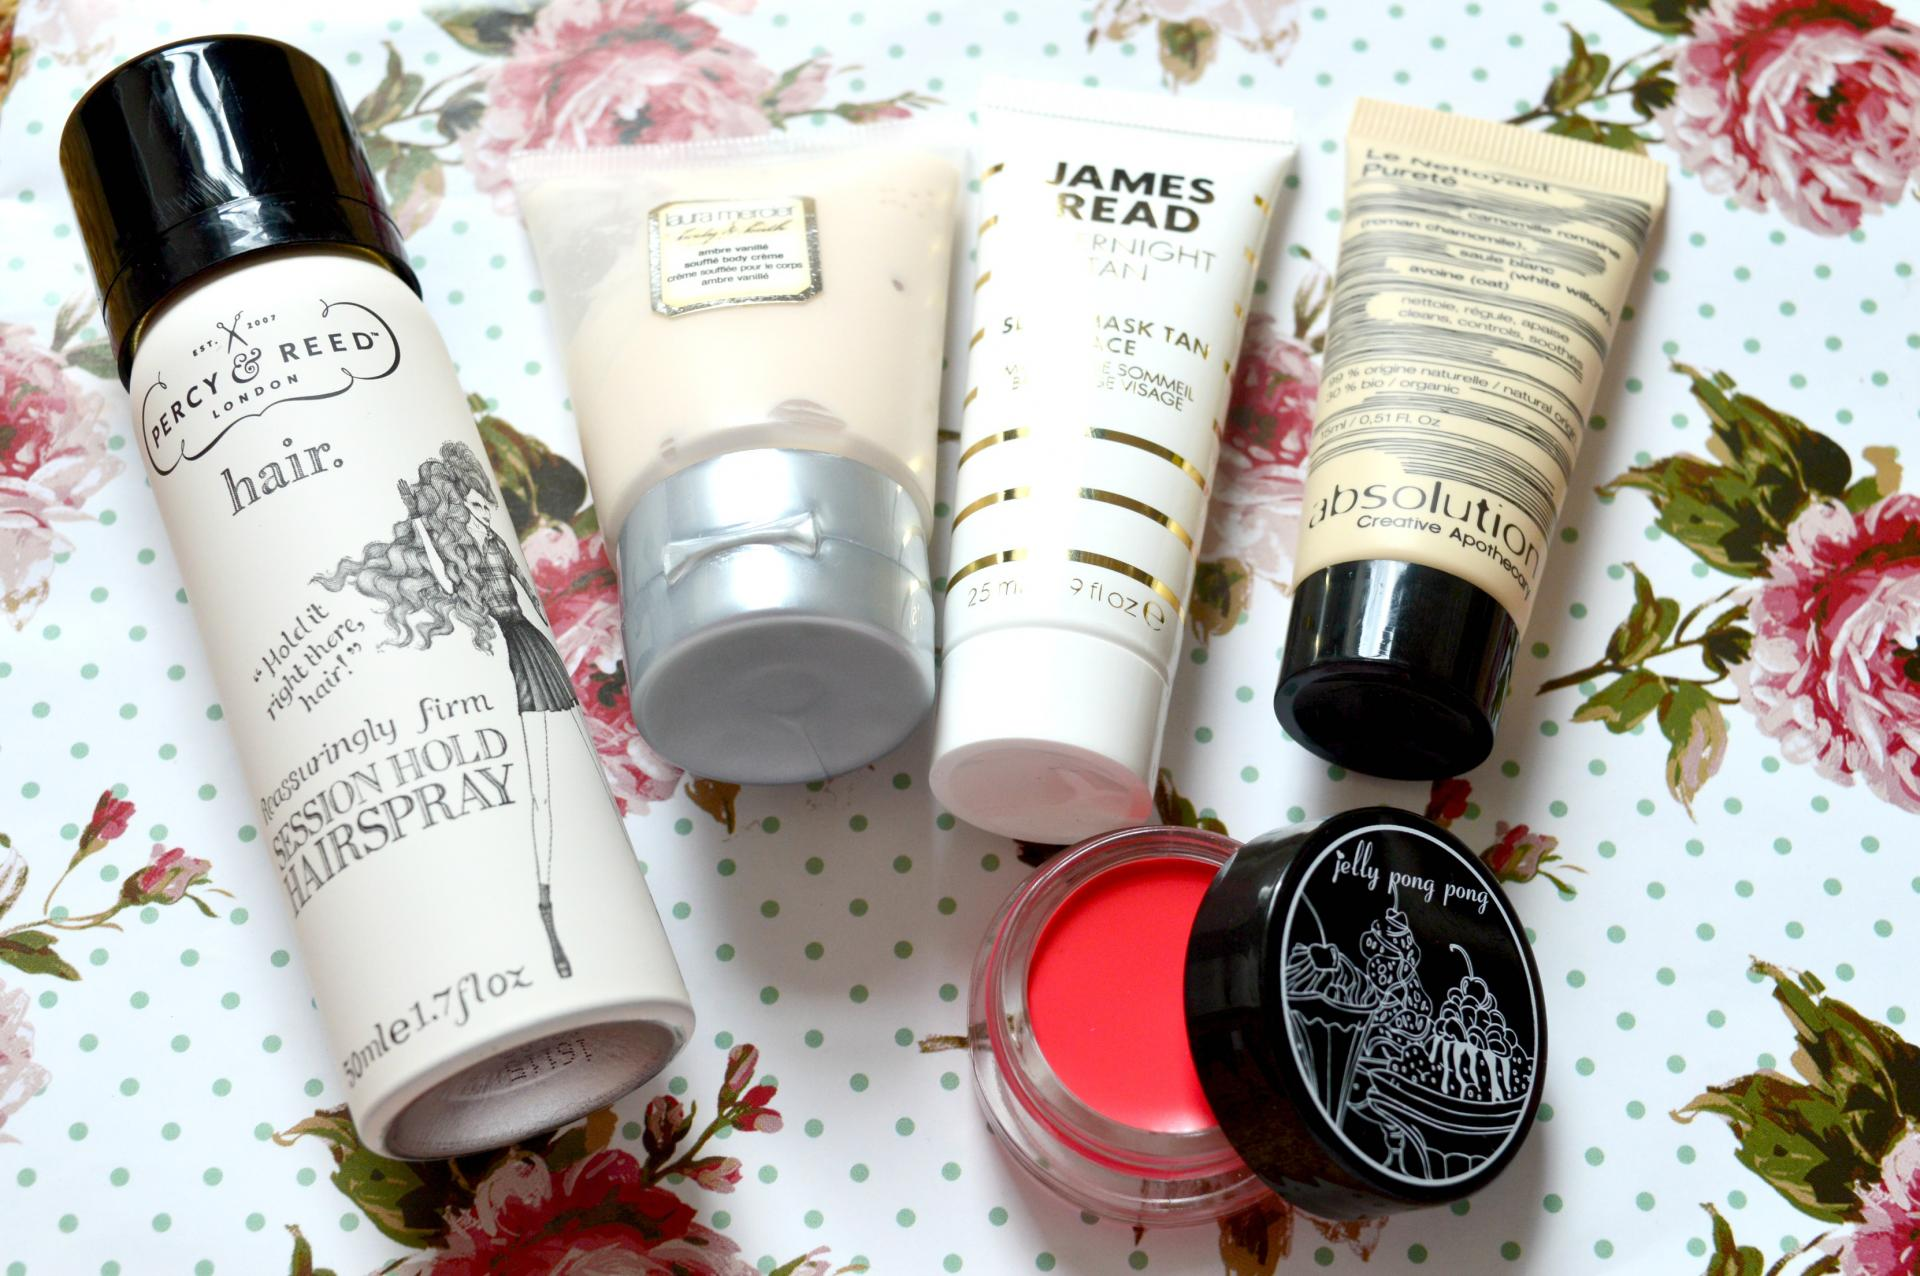 Birchbox June 2016 | Percy and Reed Reassuringly Firm Session Hold Hairspray, Laura Mercier Souffle Body Creme in Ambre Vanilla, James Read Overnight Tan Sleep Mask Tan Face, Absolution Le Nettoyant Purete and Jelly Pong Pong Paradise Pigment in Cake Pop